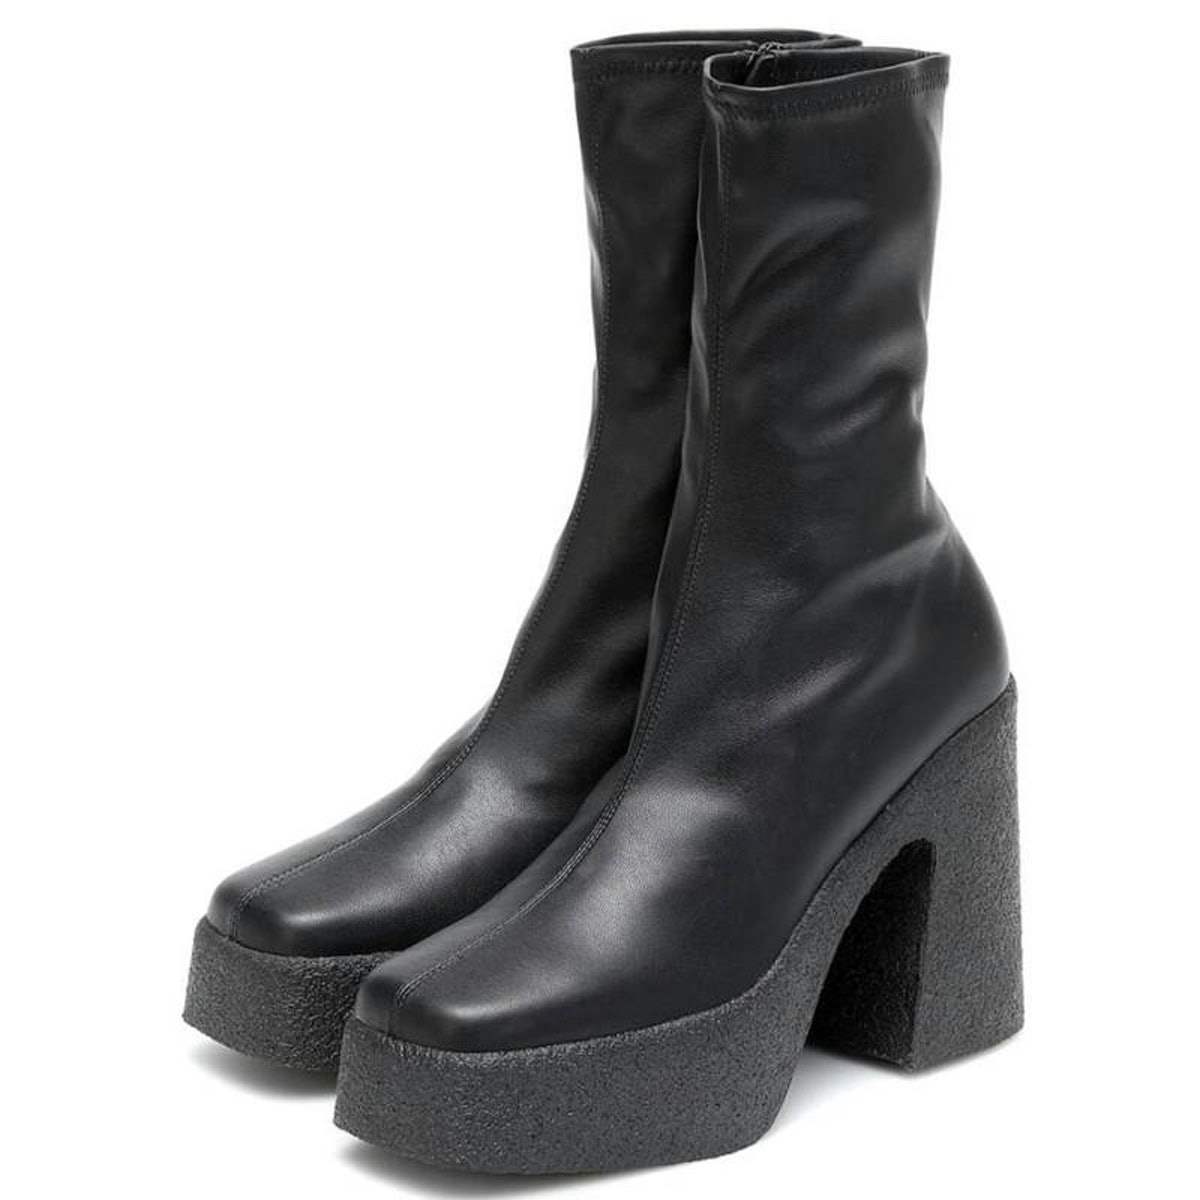 Platform Elastic Sock Stretch High Women Ankle Brand Designed Short Boots Chunky Heel Shoes Party Bo...